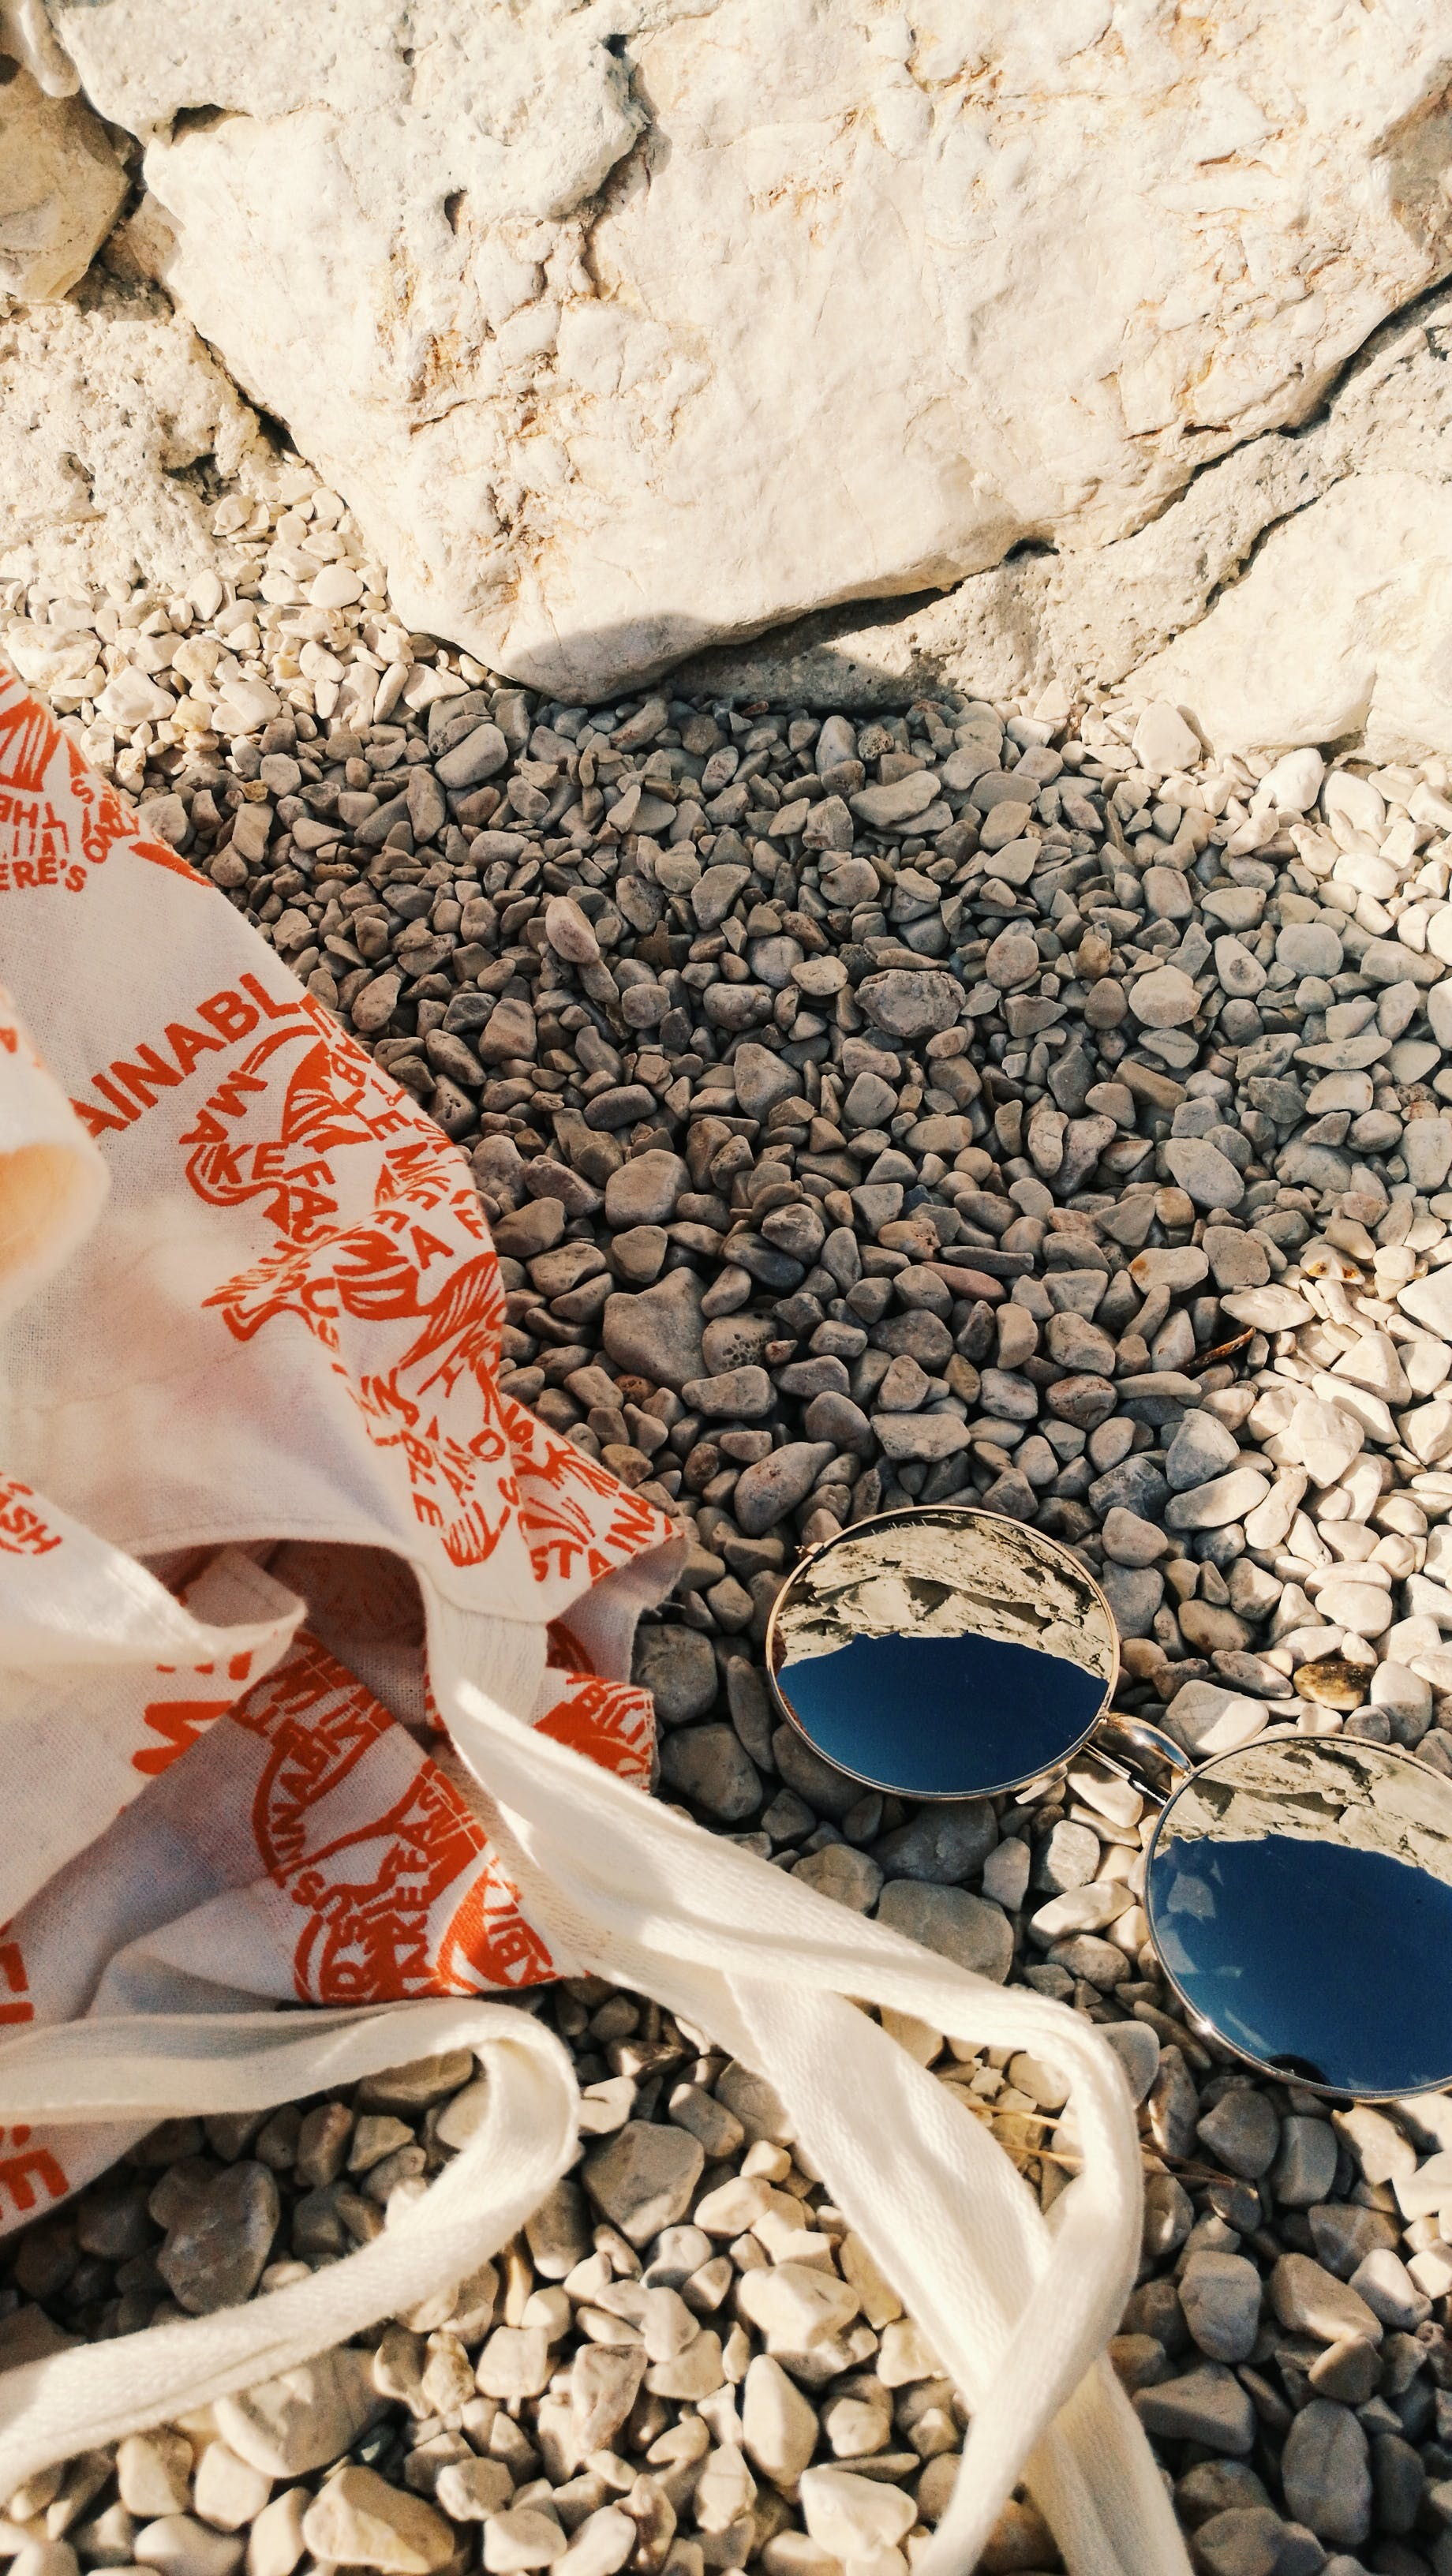 Black Sunglasses on Pebbles Outdoors